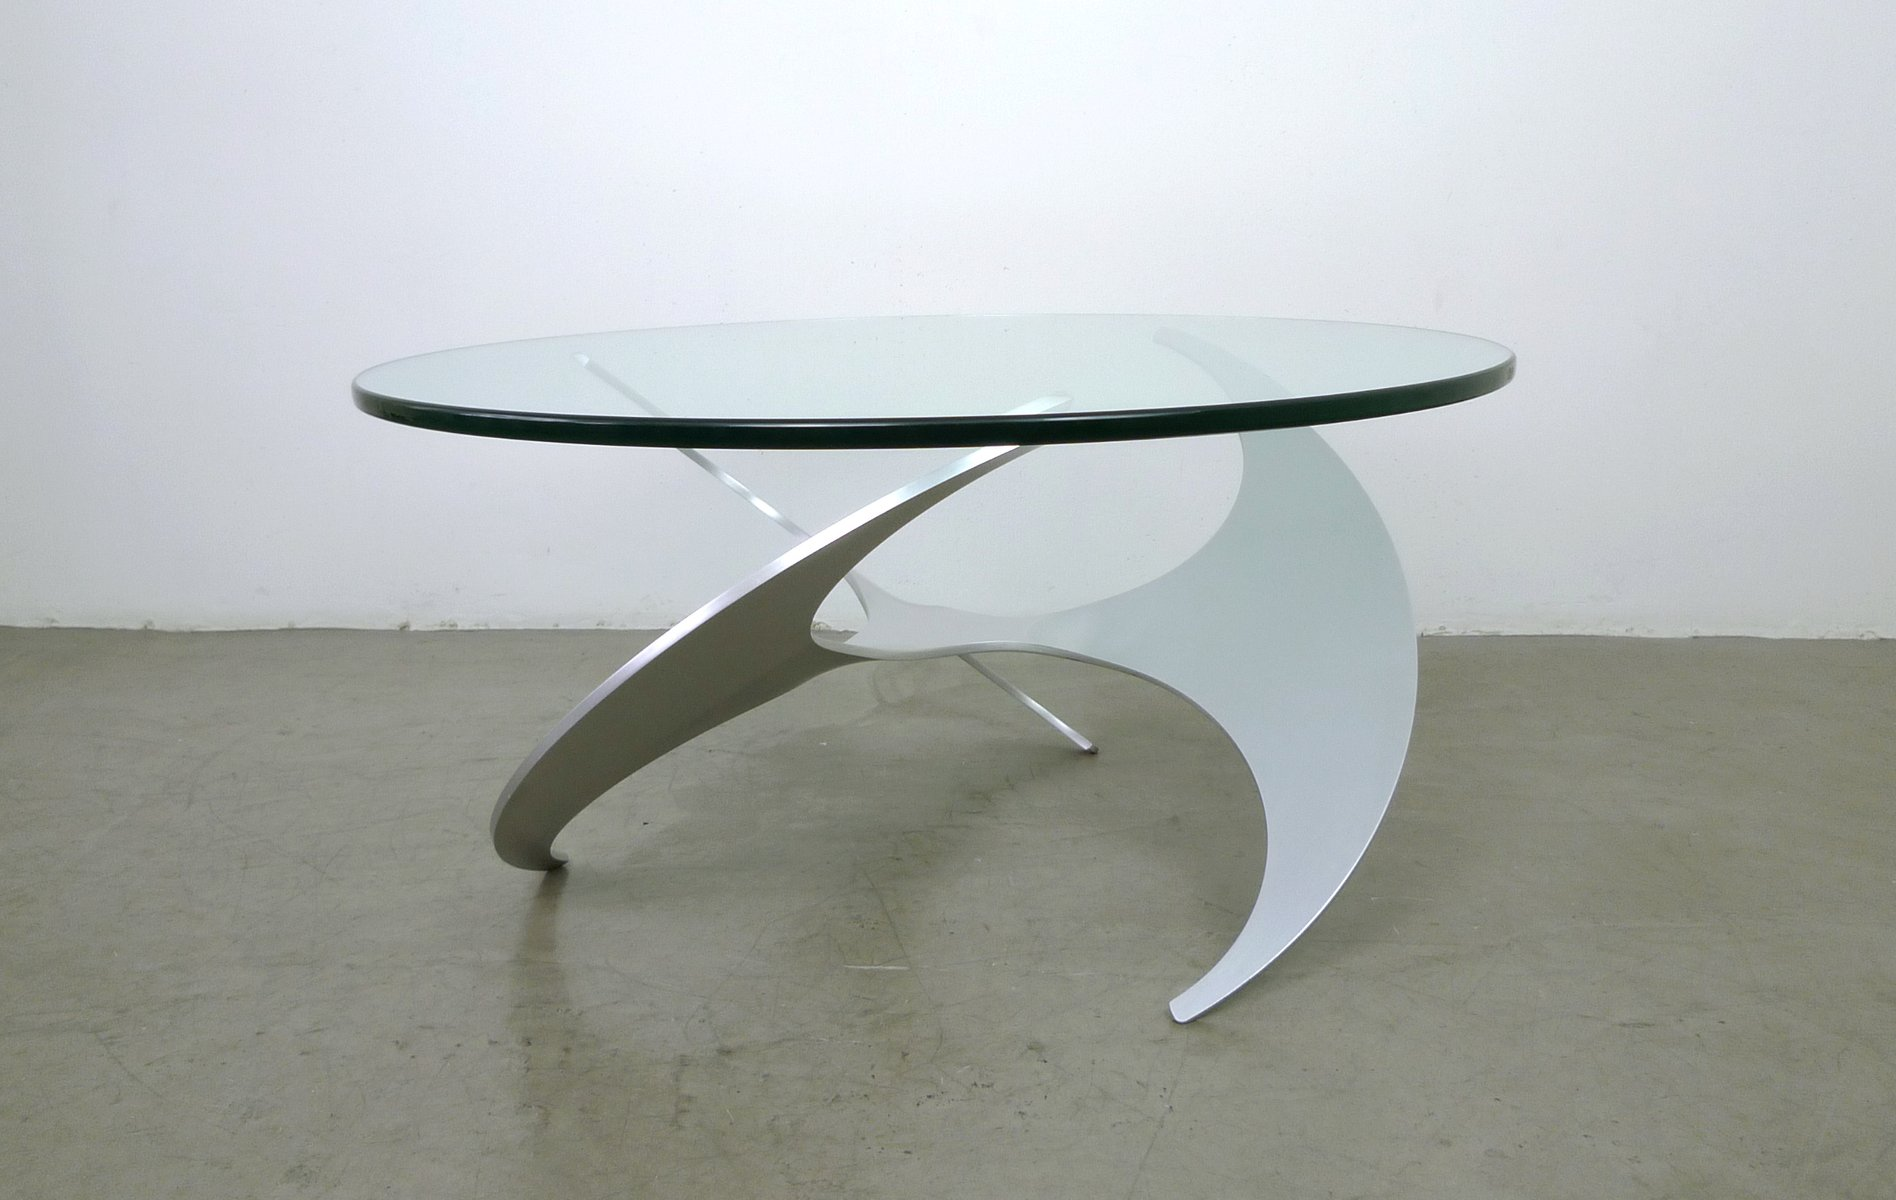 Couchtisch Ronald Schmitt K9 Propeller Coffee Table By Knut Hesterberg For Ronald Schmitt 1960s